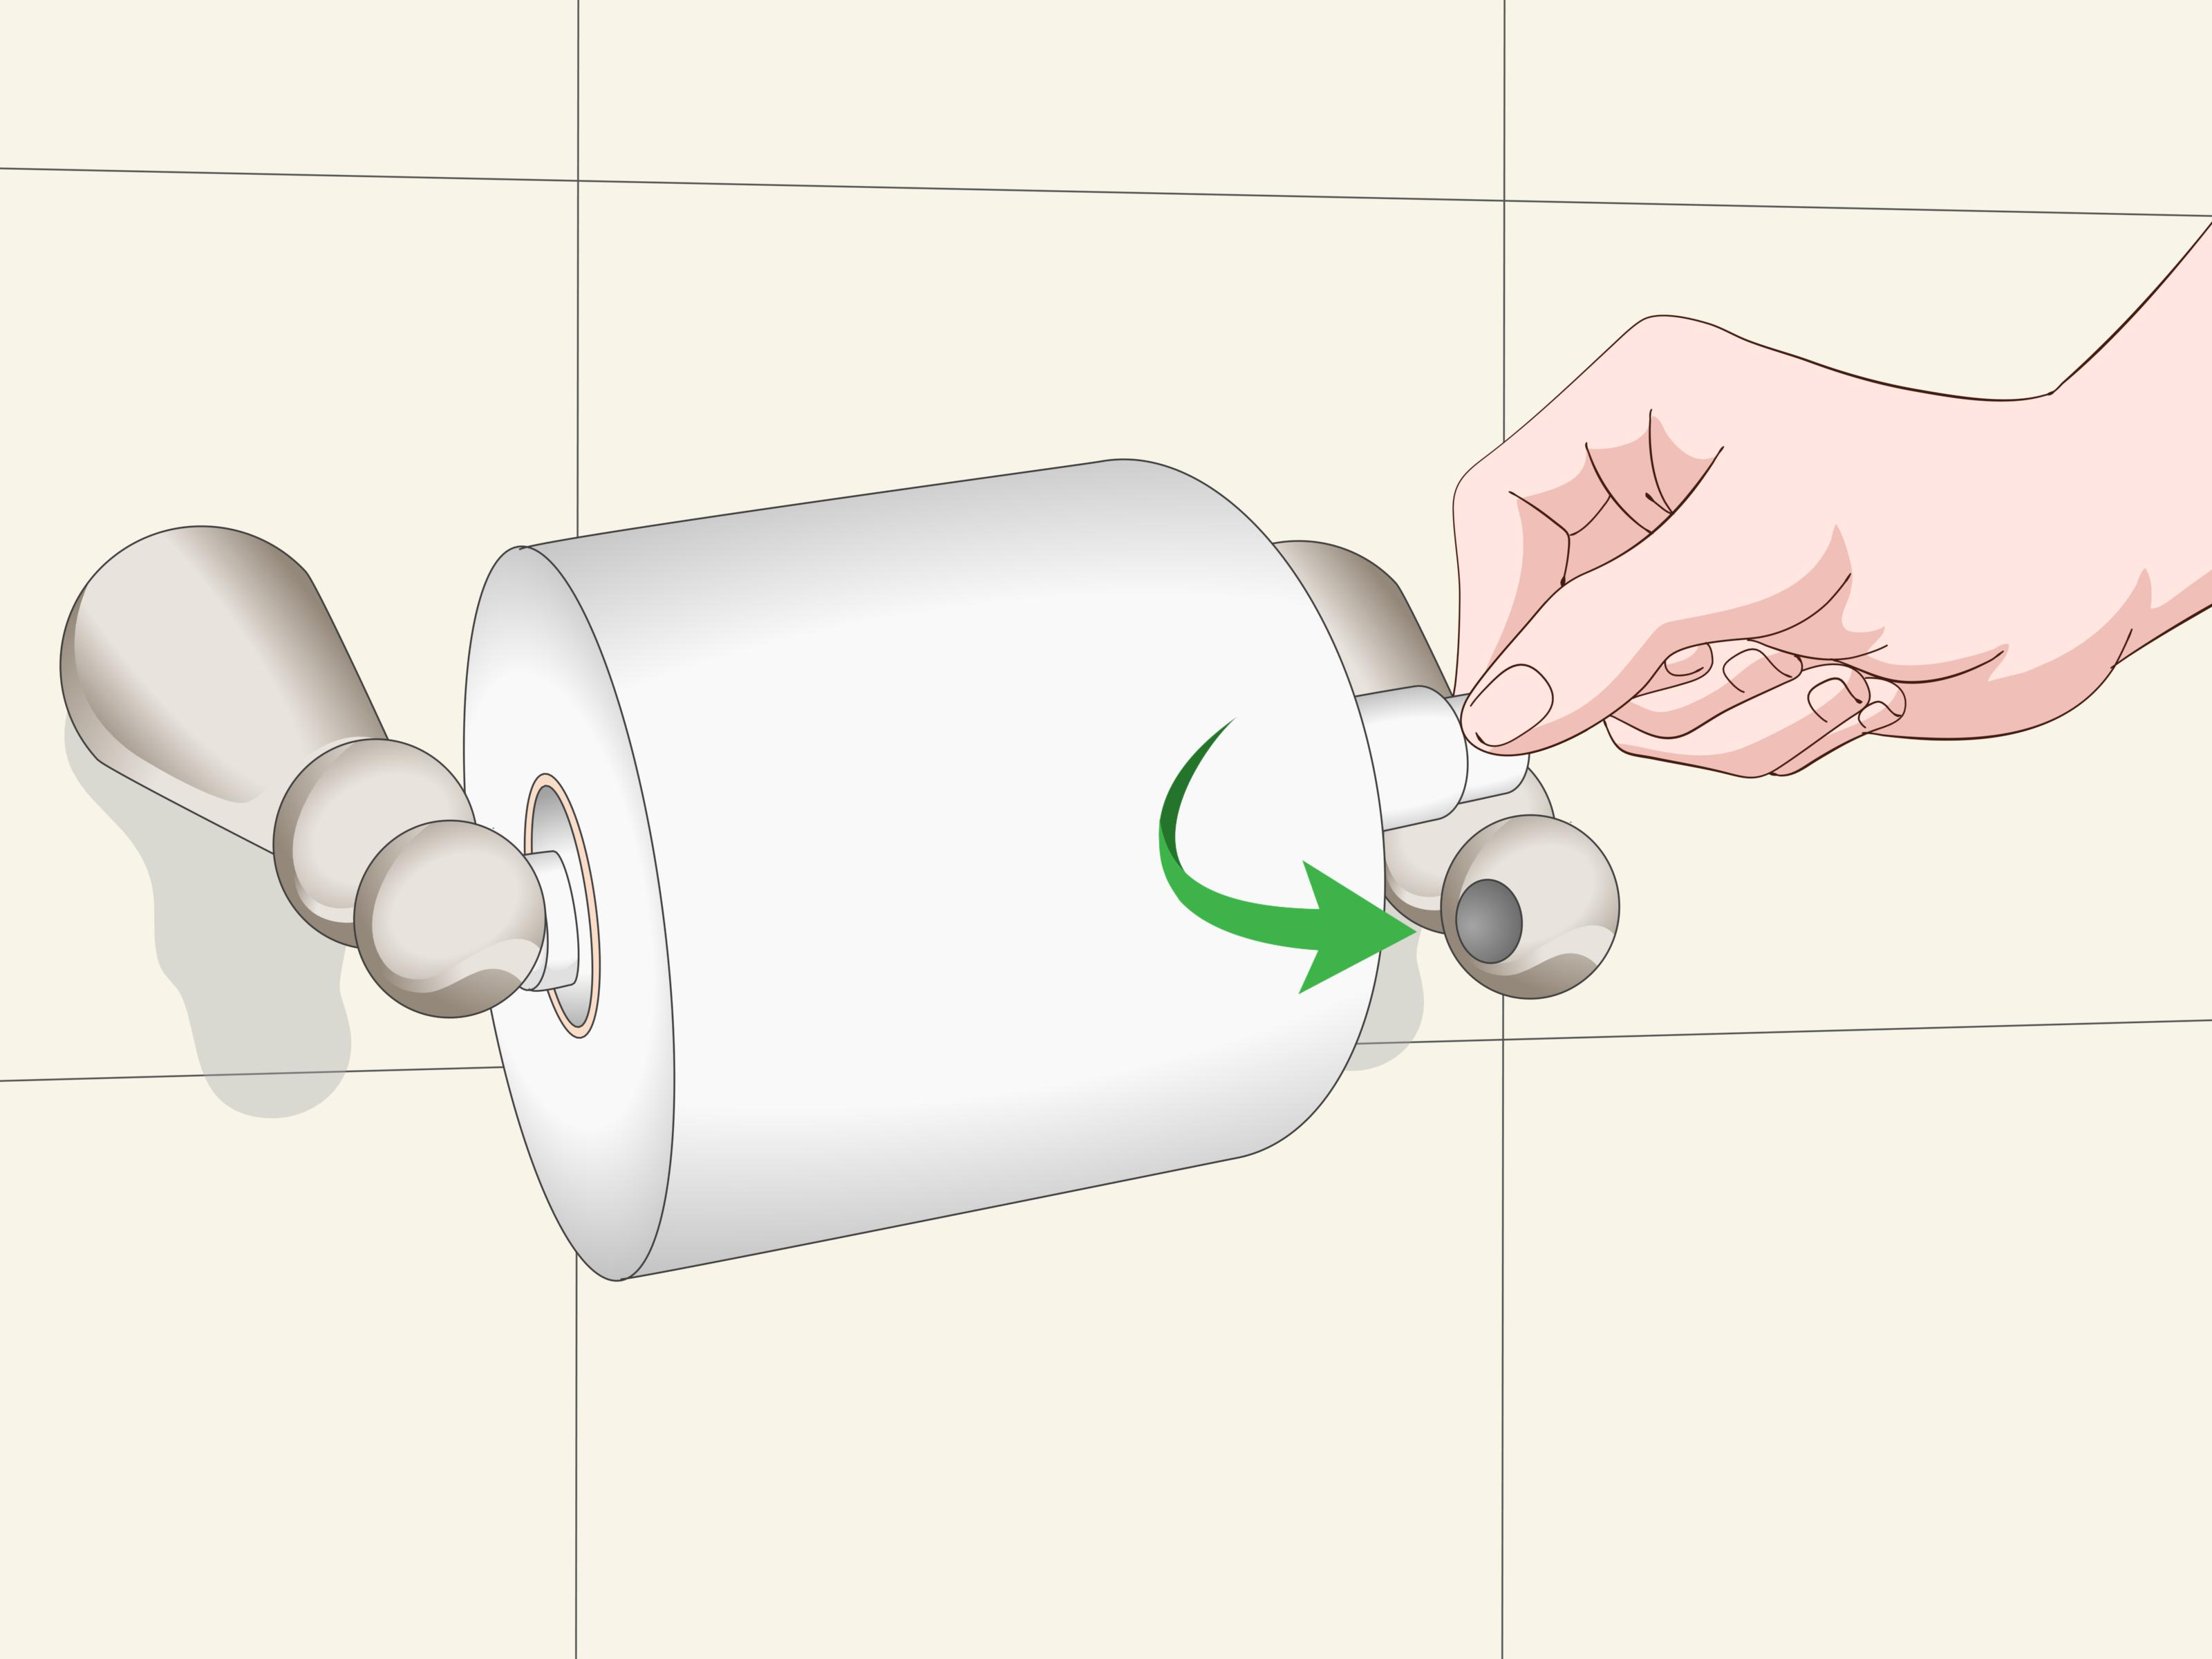 How to Install a Toilet Paper Holder: 10 Steps (with Pictures)